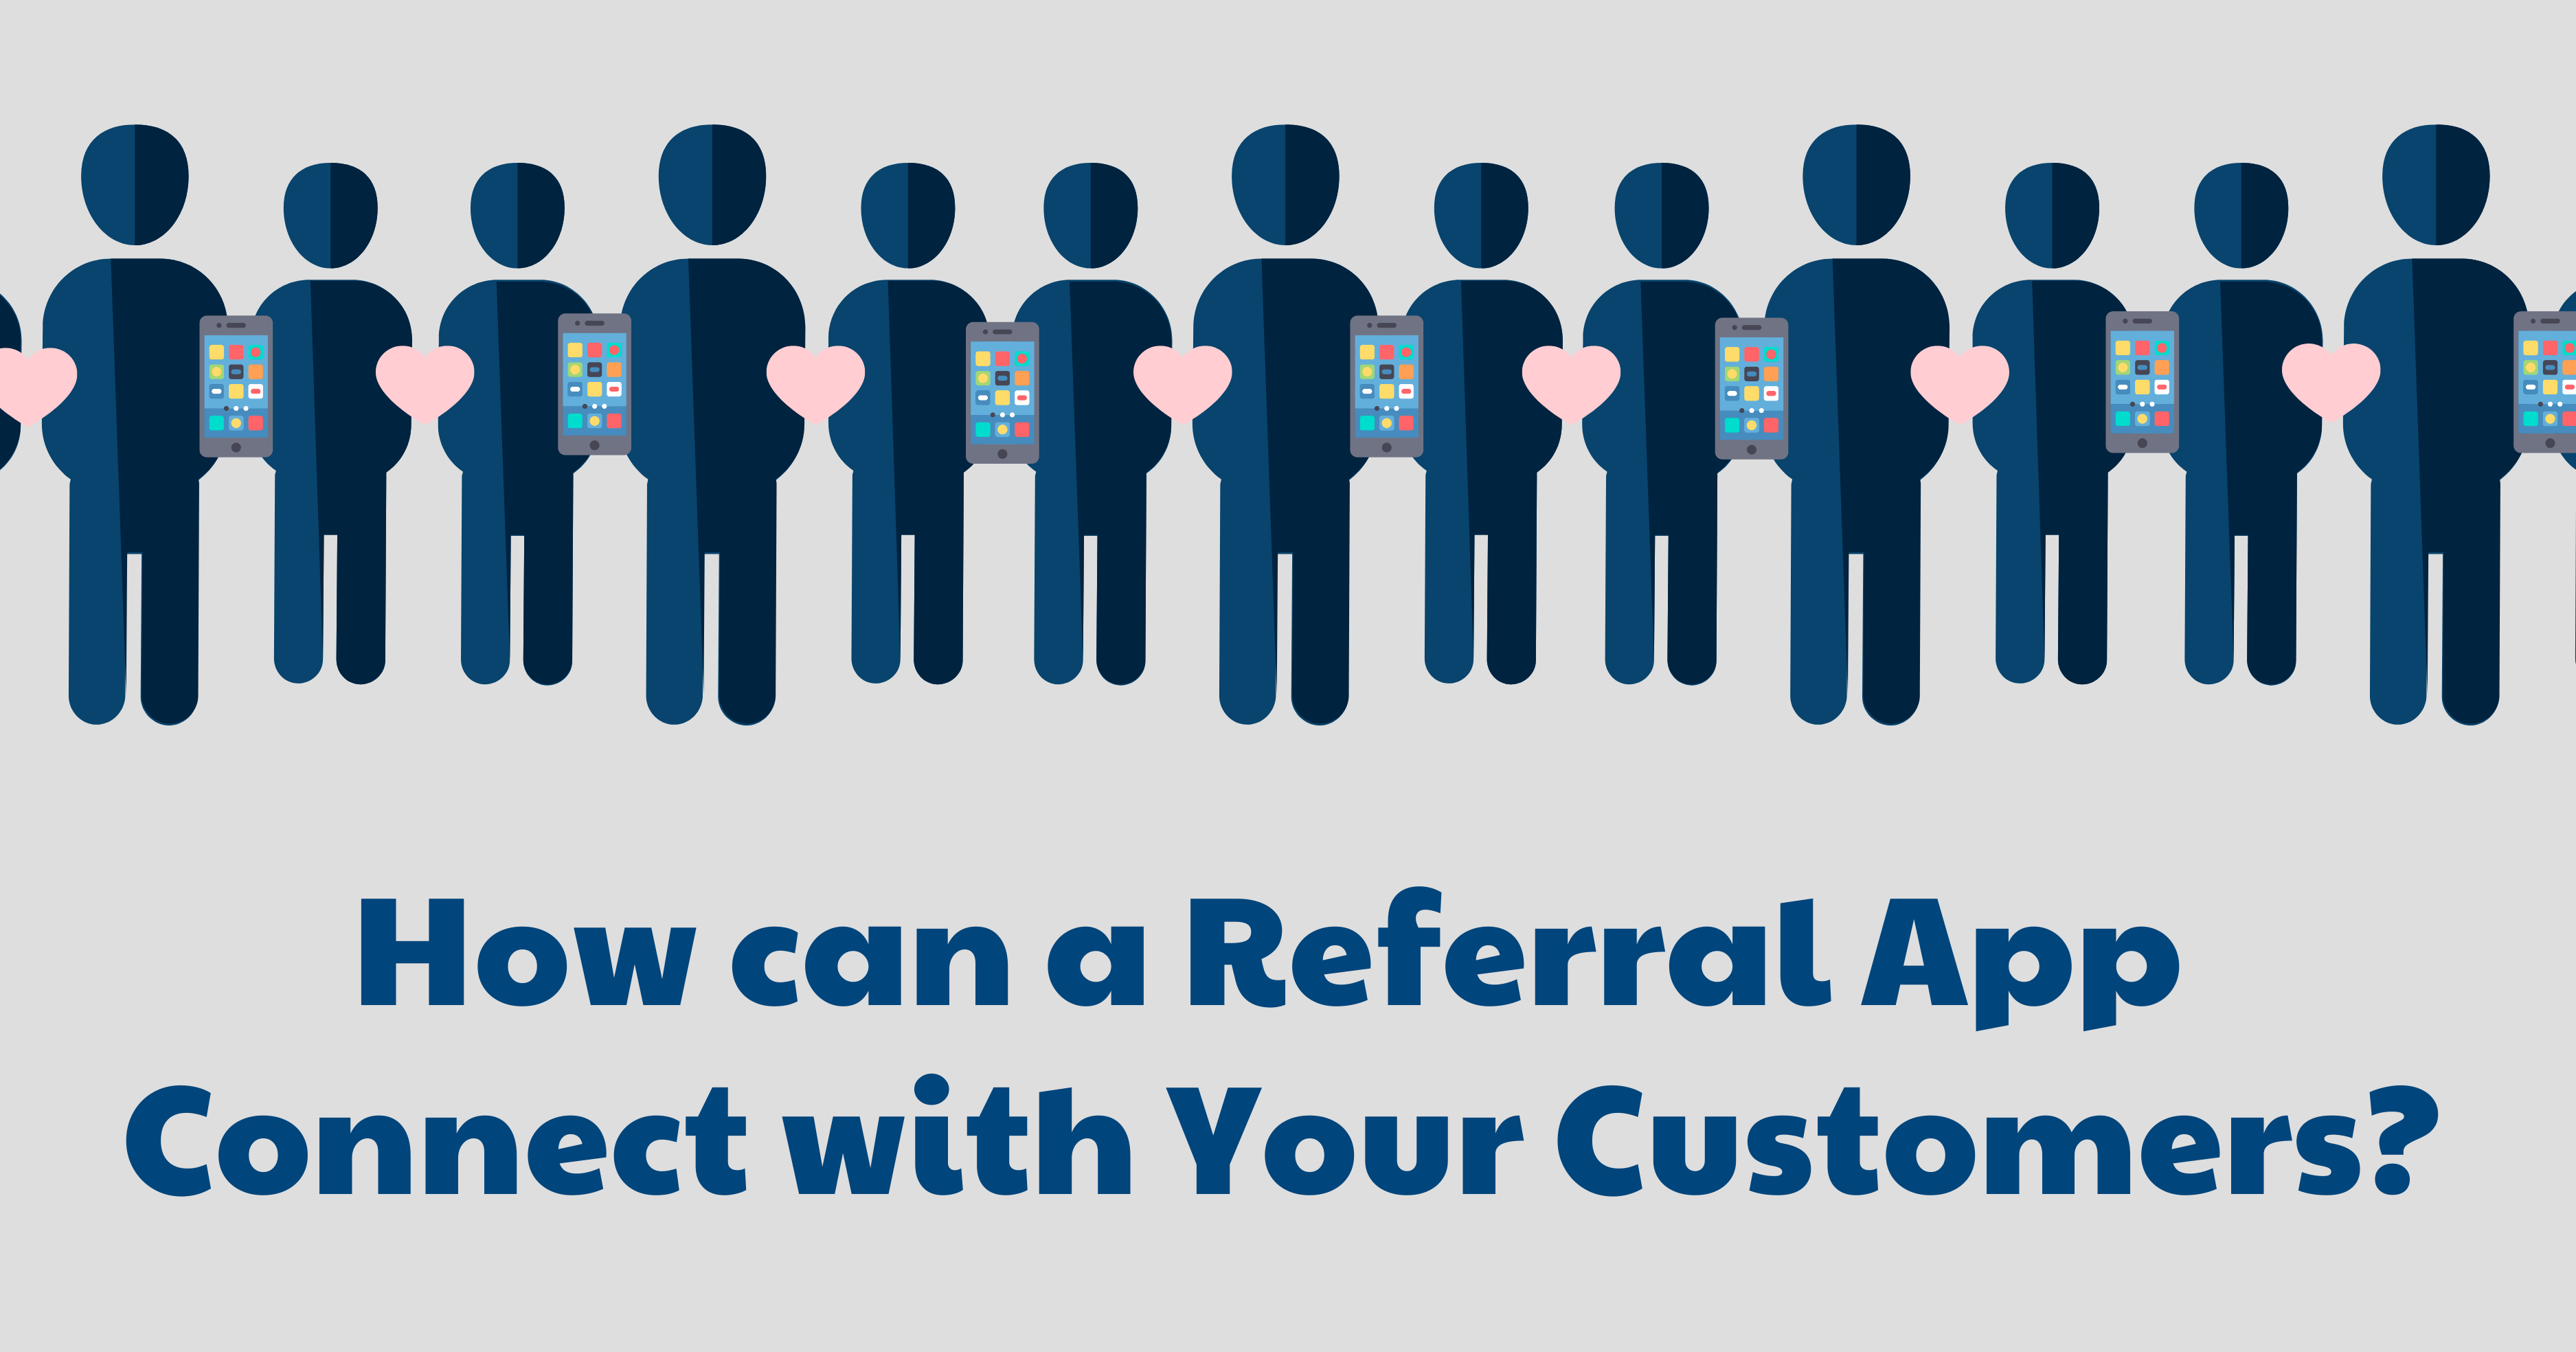 How can a Referral App Connect with Your Customers?